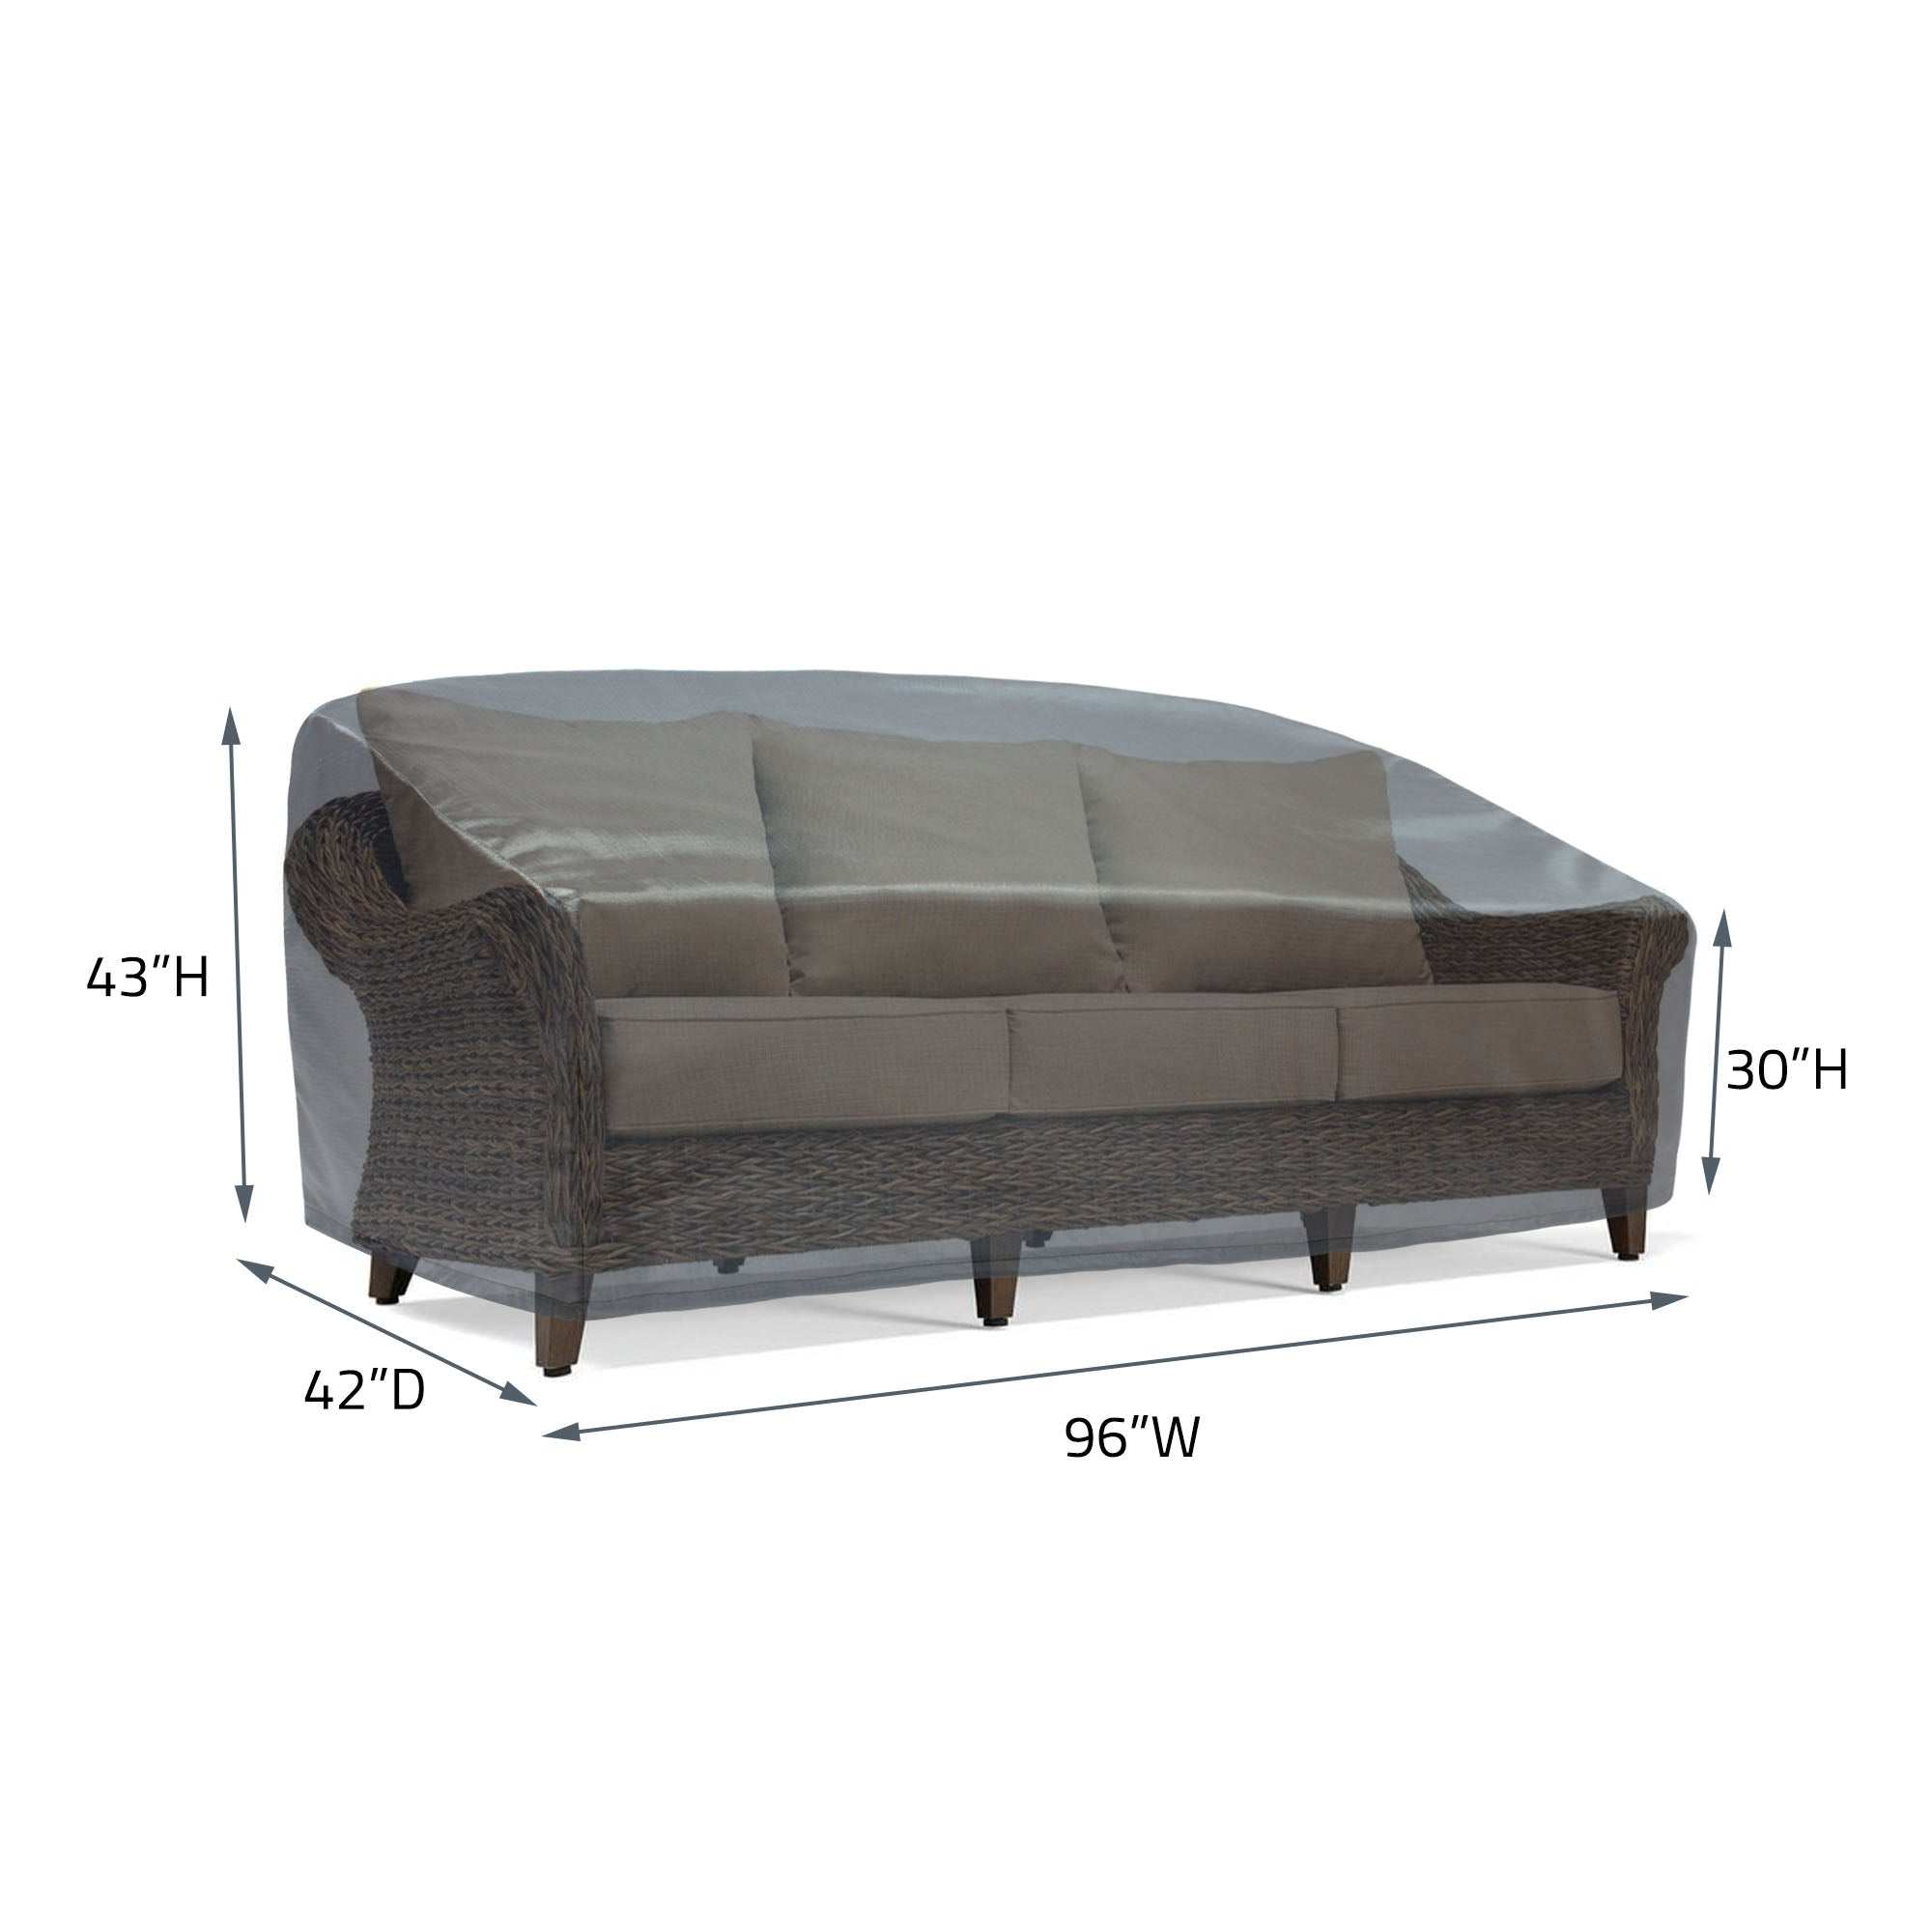 COV-M241 Premium Mercury Cover XL Sofa